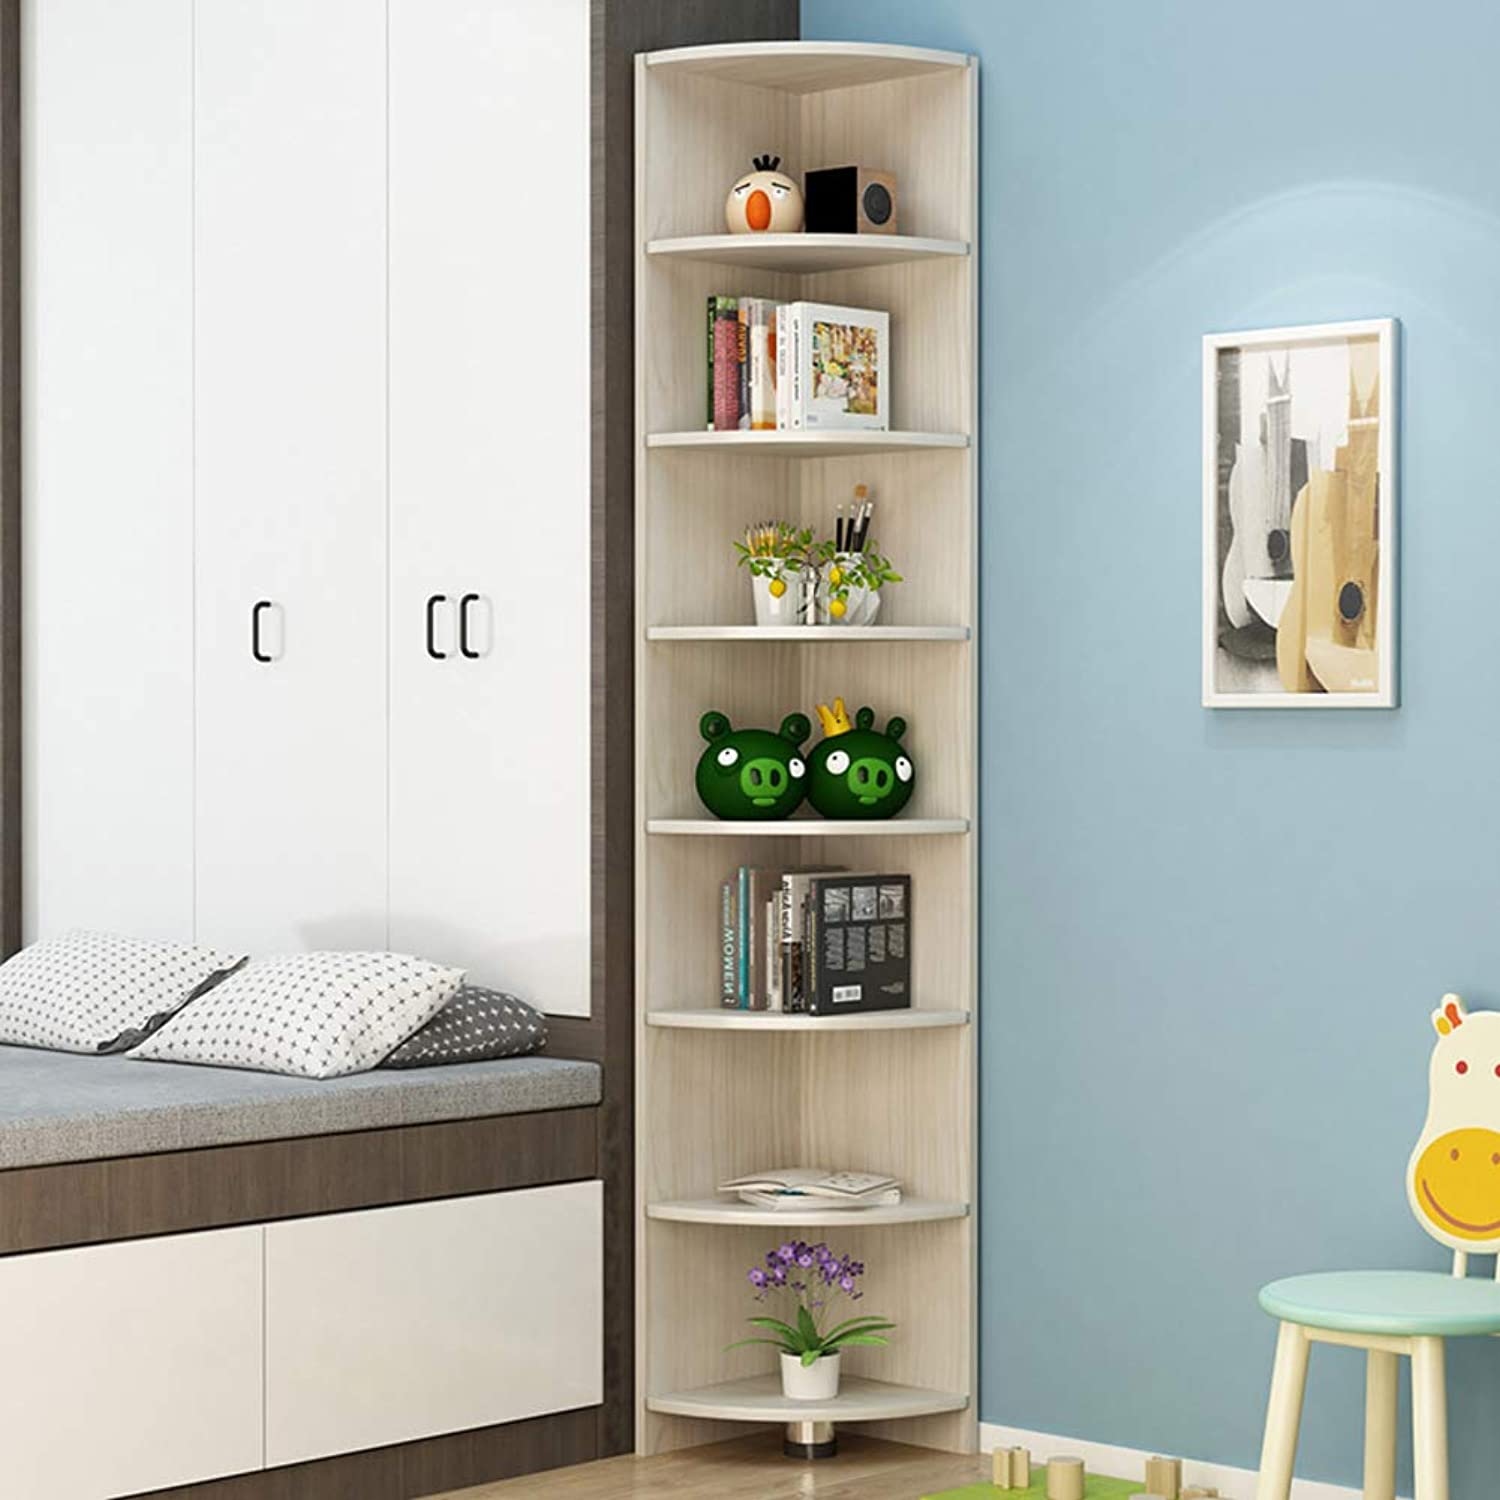 Solid Wood Corner Bookcase, 5-Tier Storage Cabinet, Multi-Layer Storage Rack Display Shelf for Home Or Office-c 90x30x30cm(35x12x12inch)